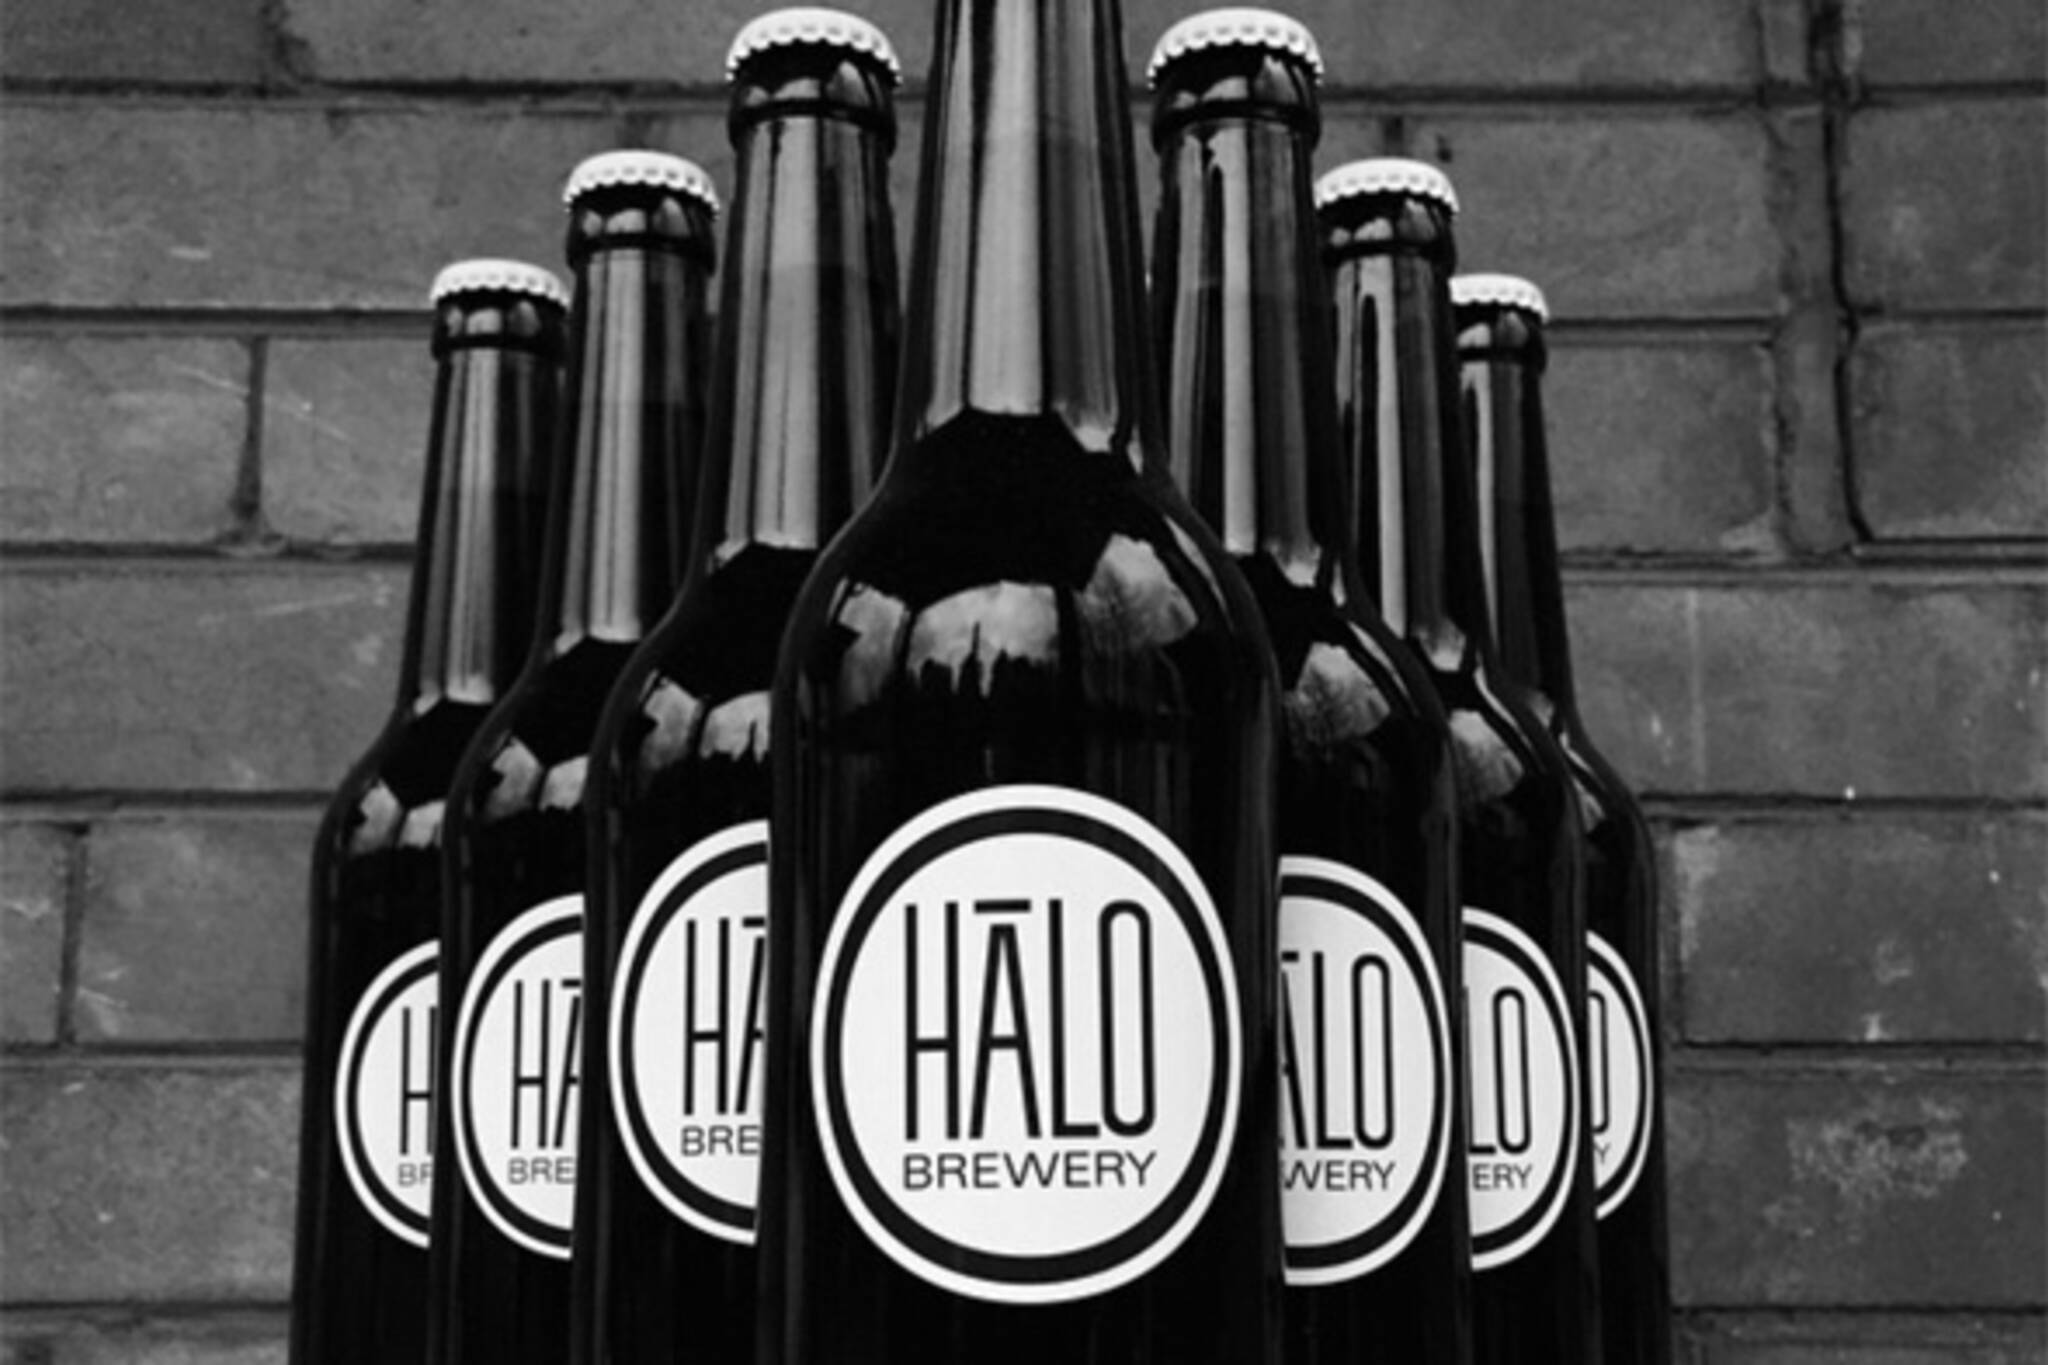 halo brewery